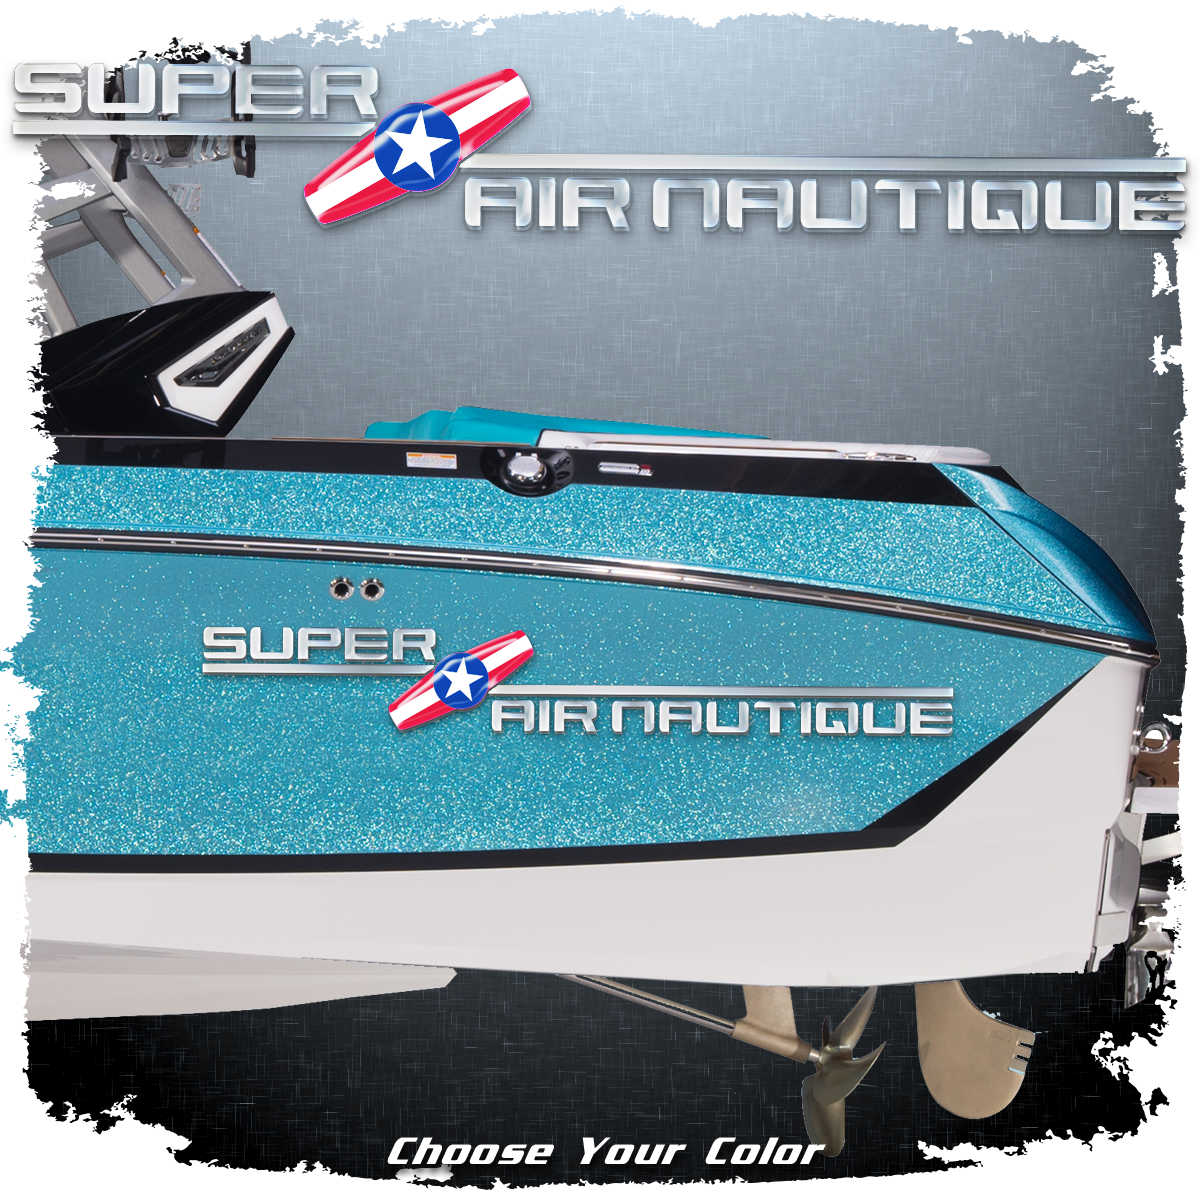 Domed 2000-05 Super Air Nautique Decal, Choose Your Color (1 included)